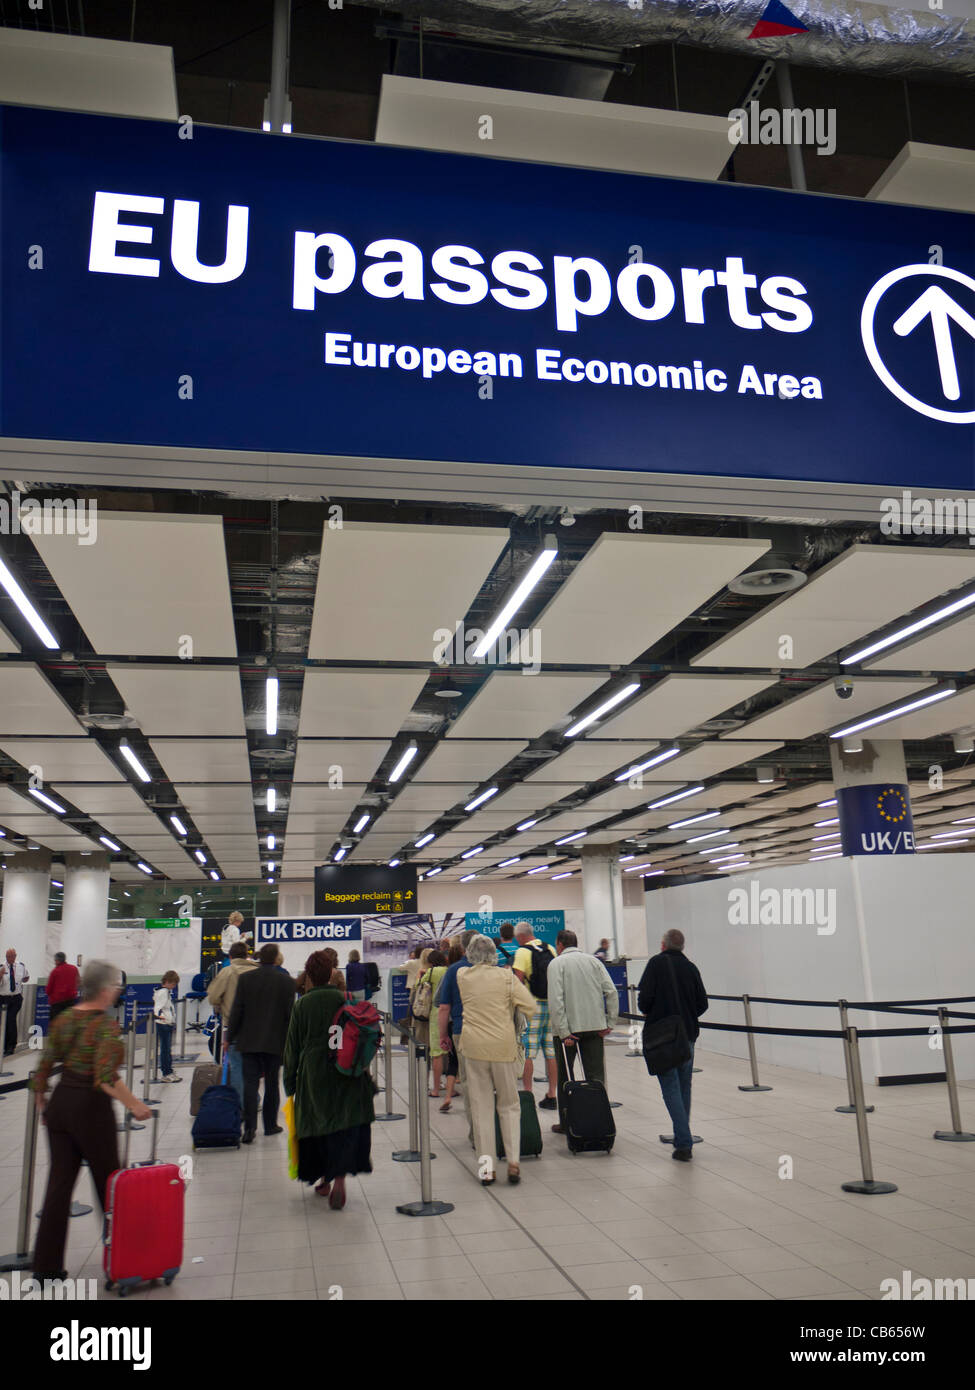 UK Border Control for EU passports at London Gatwick airport with arriving passengers awaiting clearance - Stock Image